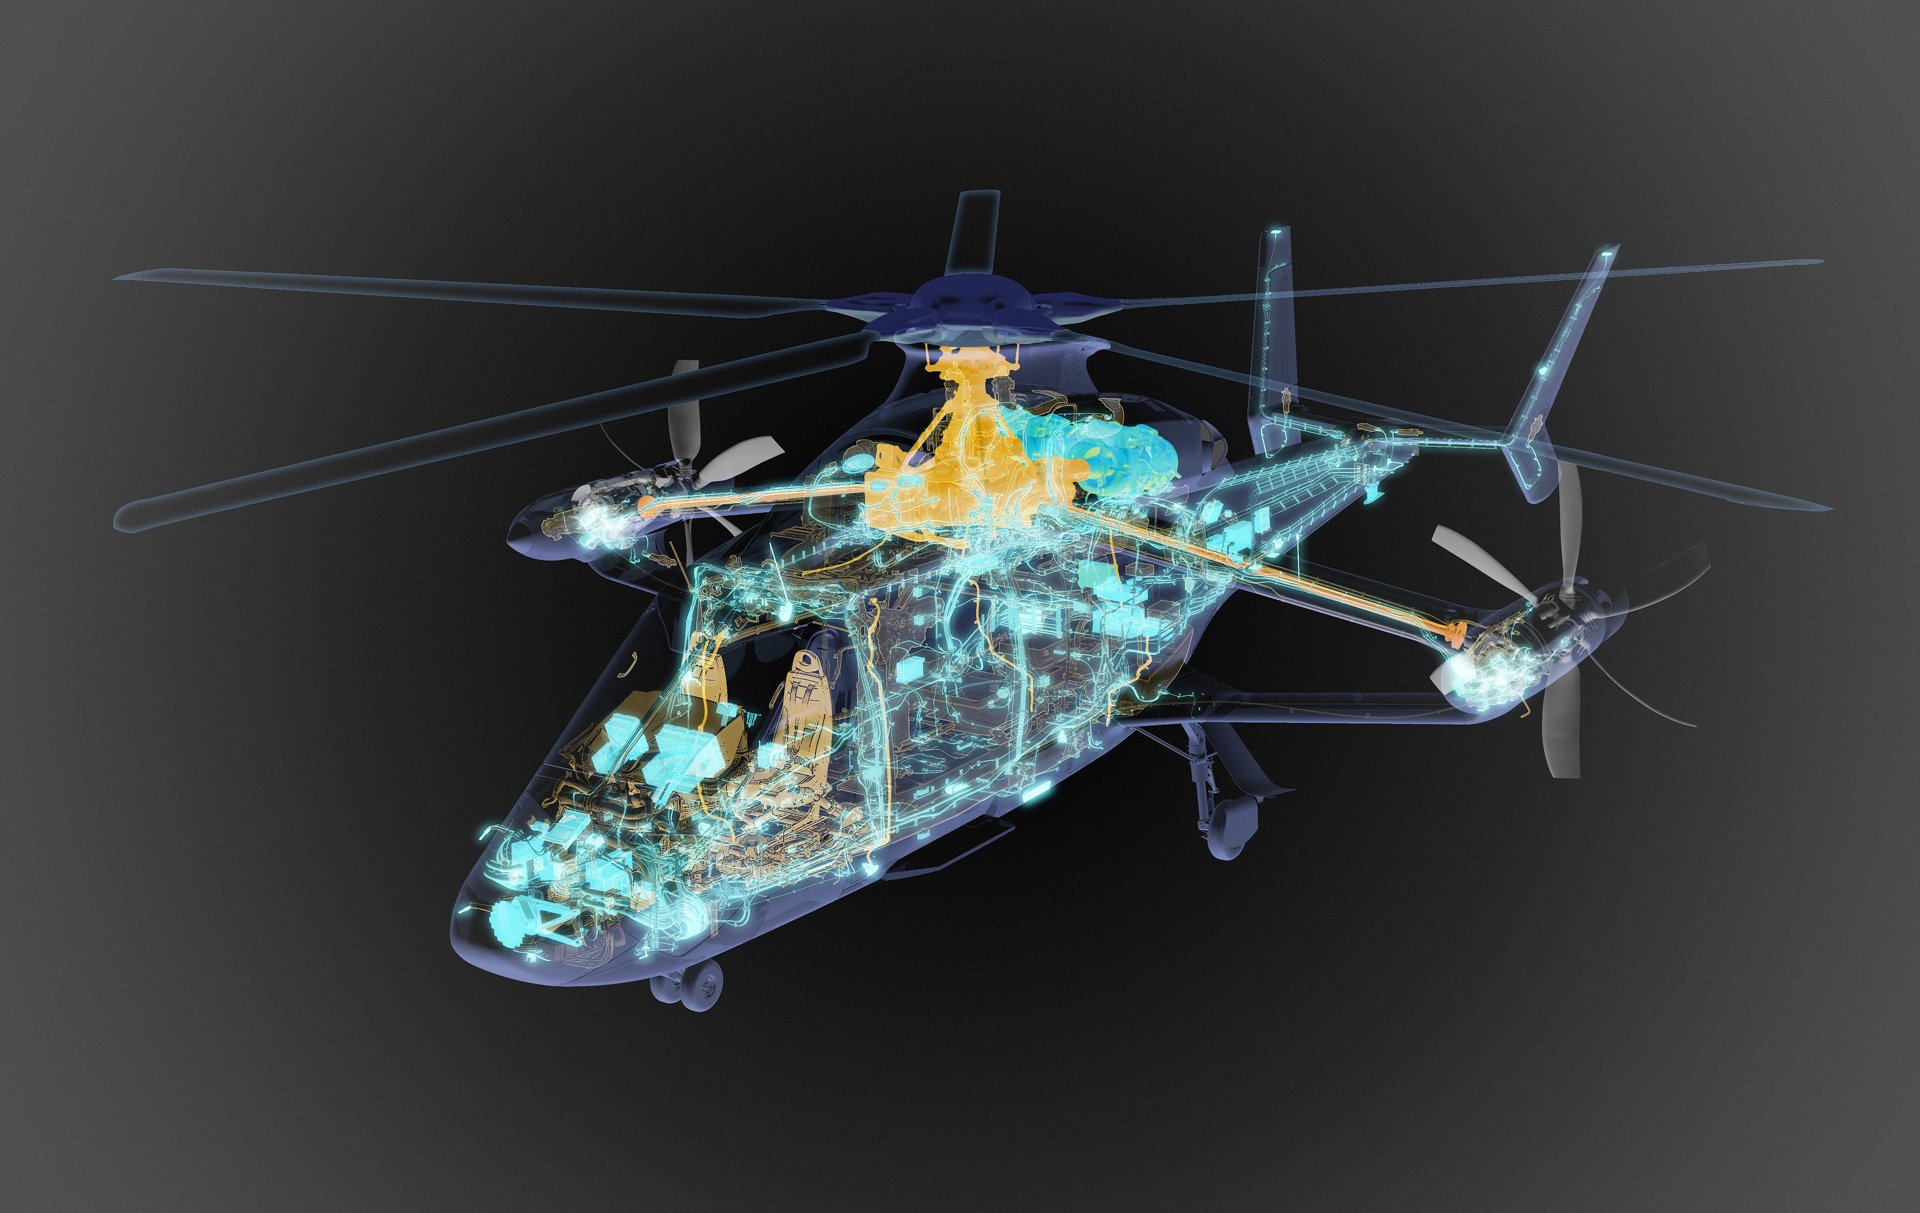 Airbus Helicopters continues to progress with the development of its Racer (Rapid And Cost-Efficient Rotorcraft) technology demonstrator, funded by European Union's H2020 framework through the Clean Sky 2 program, and aiming to provide the best trade-off between speed, cost-efficiency, sustainability and mission performance.